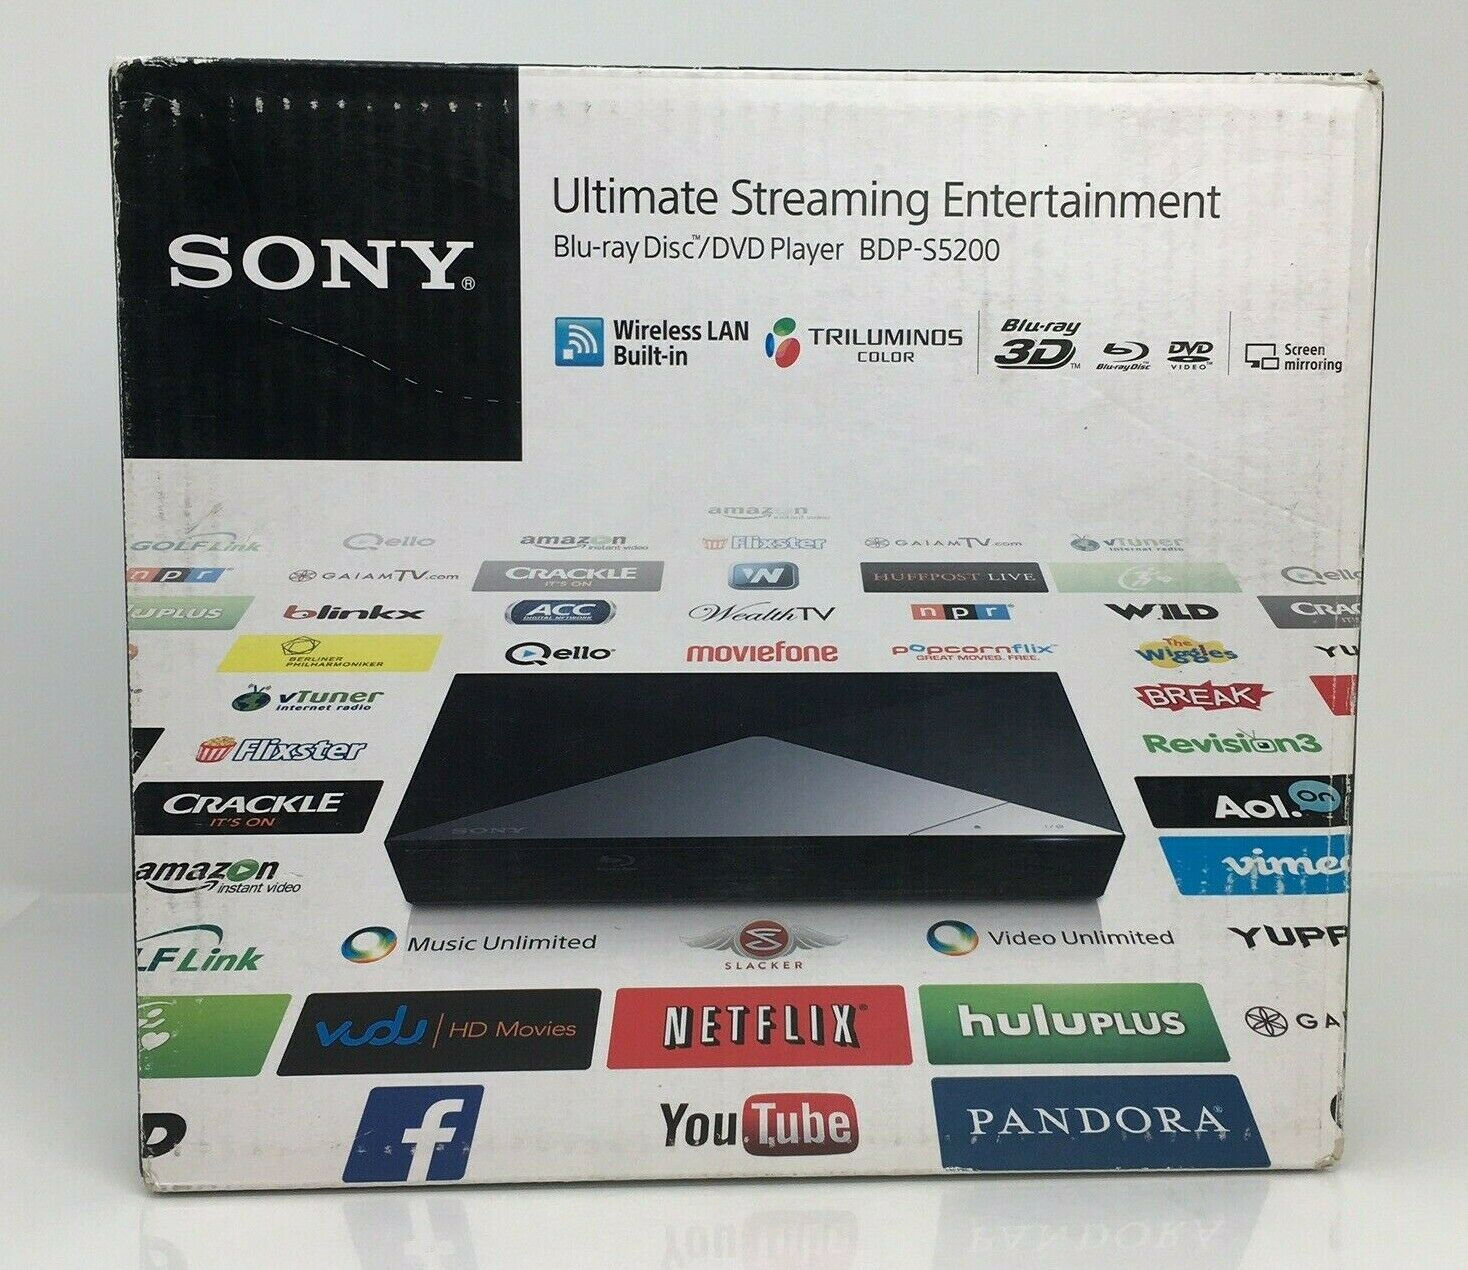 Sony BDP-S5200 3D Blu-ray/DVD Player + Wi-Fi Streaming, New Sealed new player sealed sony